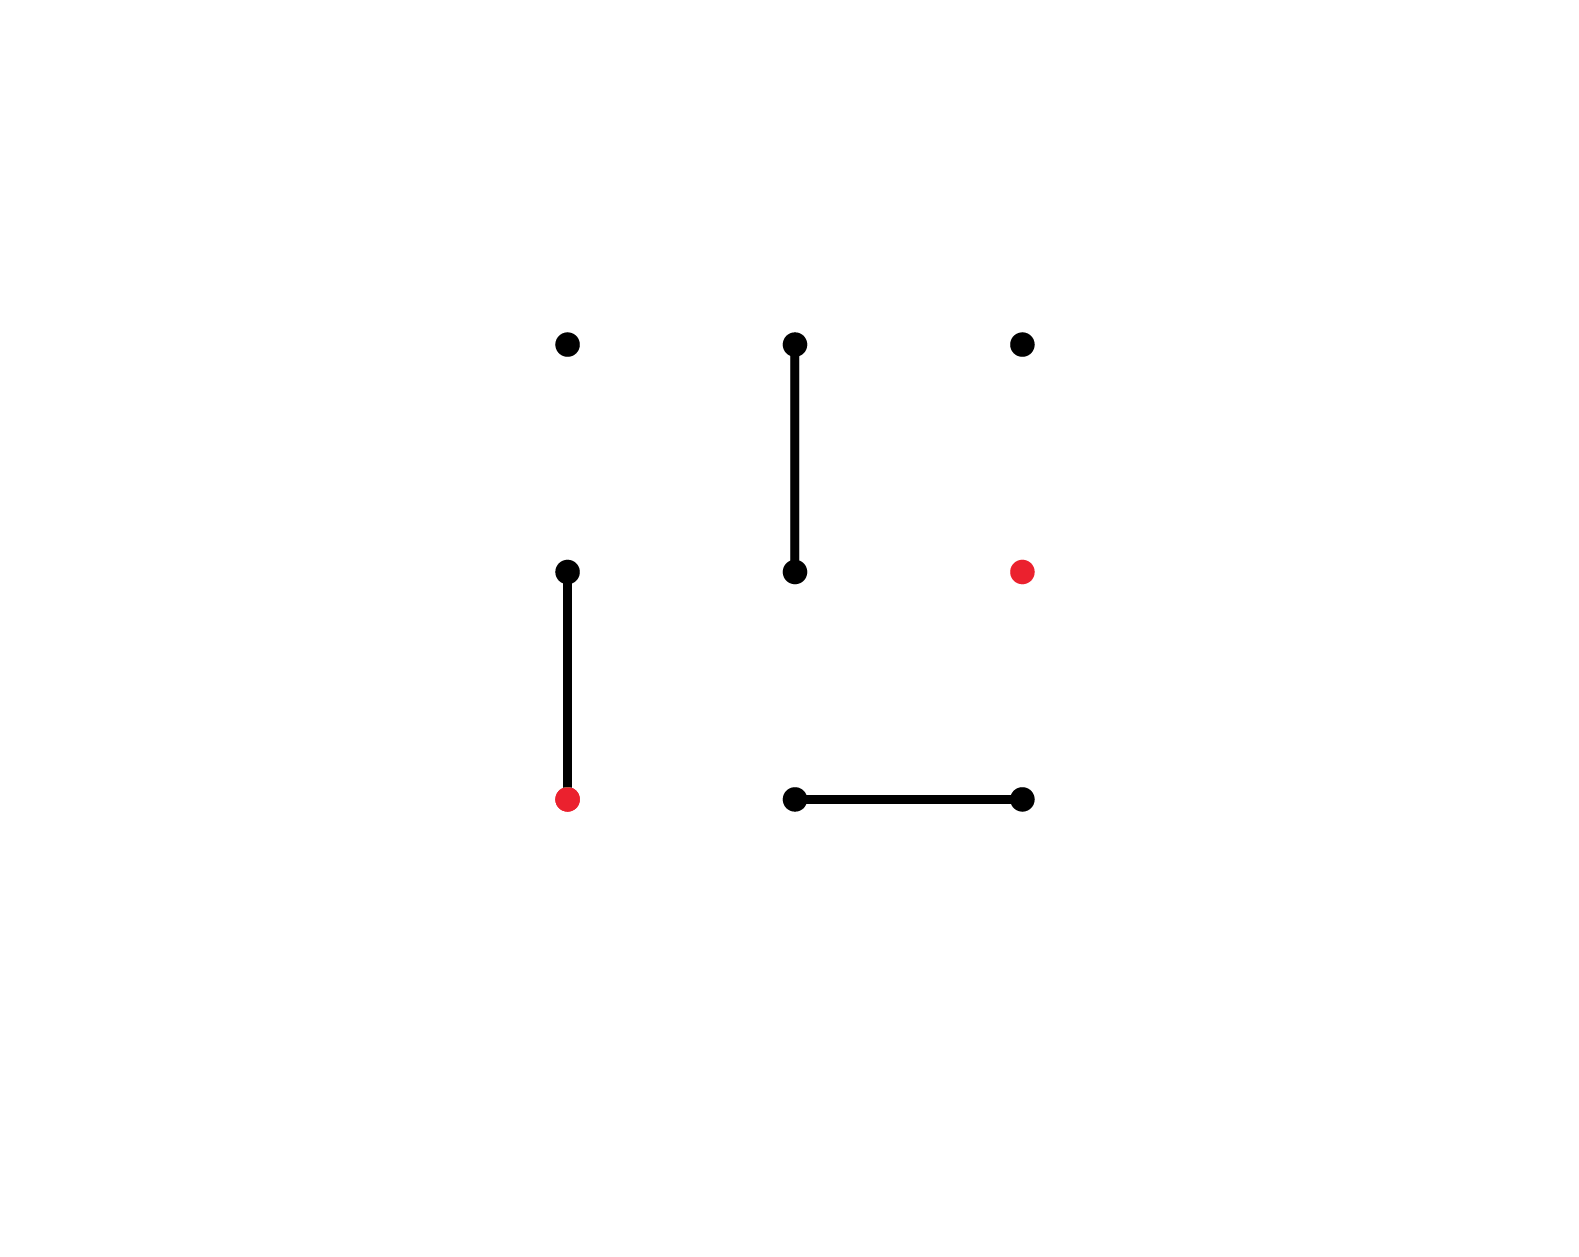 19 3 visible lines of movement plus a wish to set up a communication between two red points